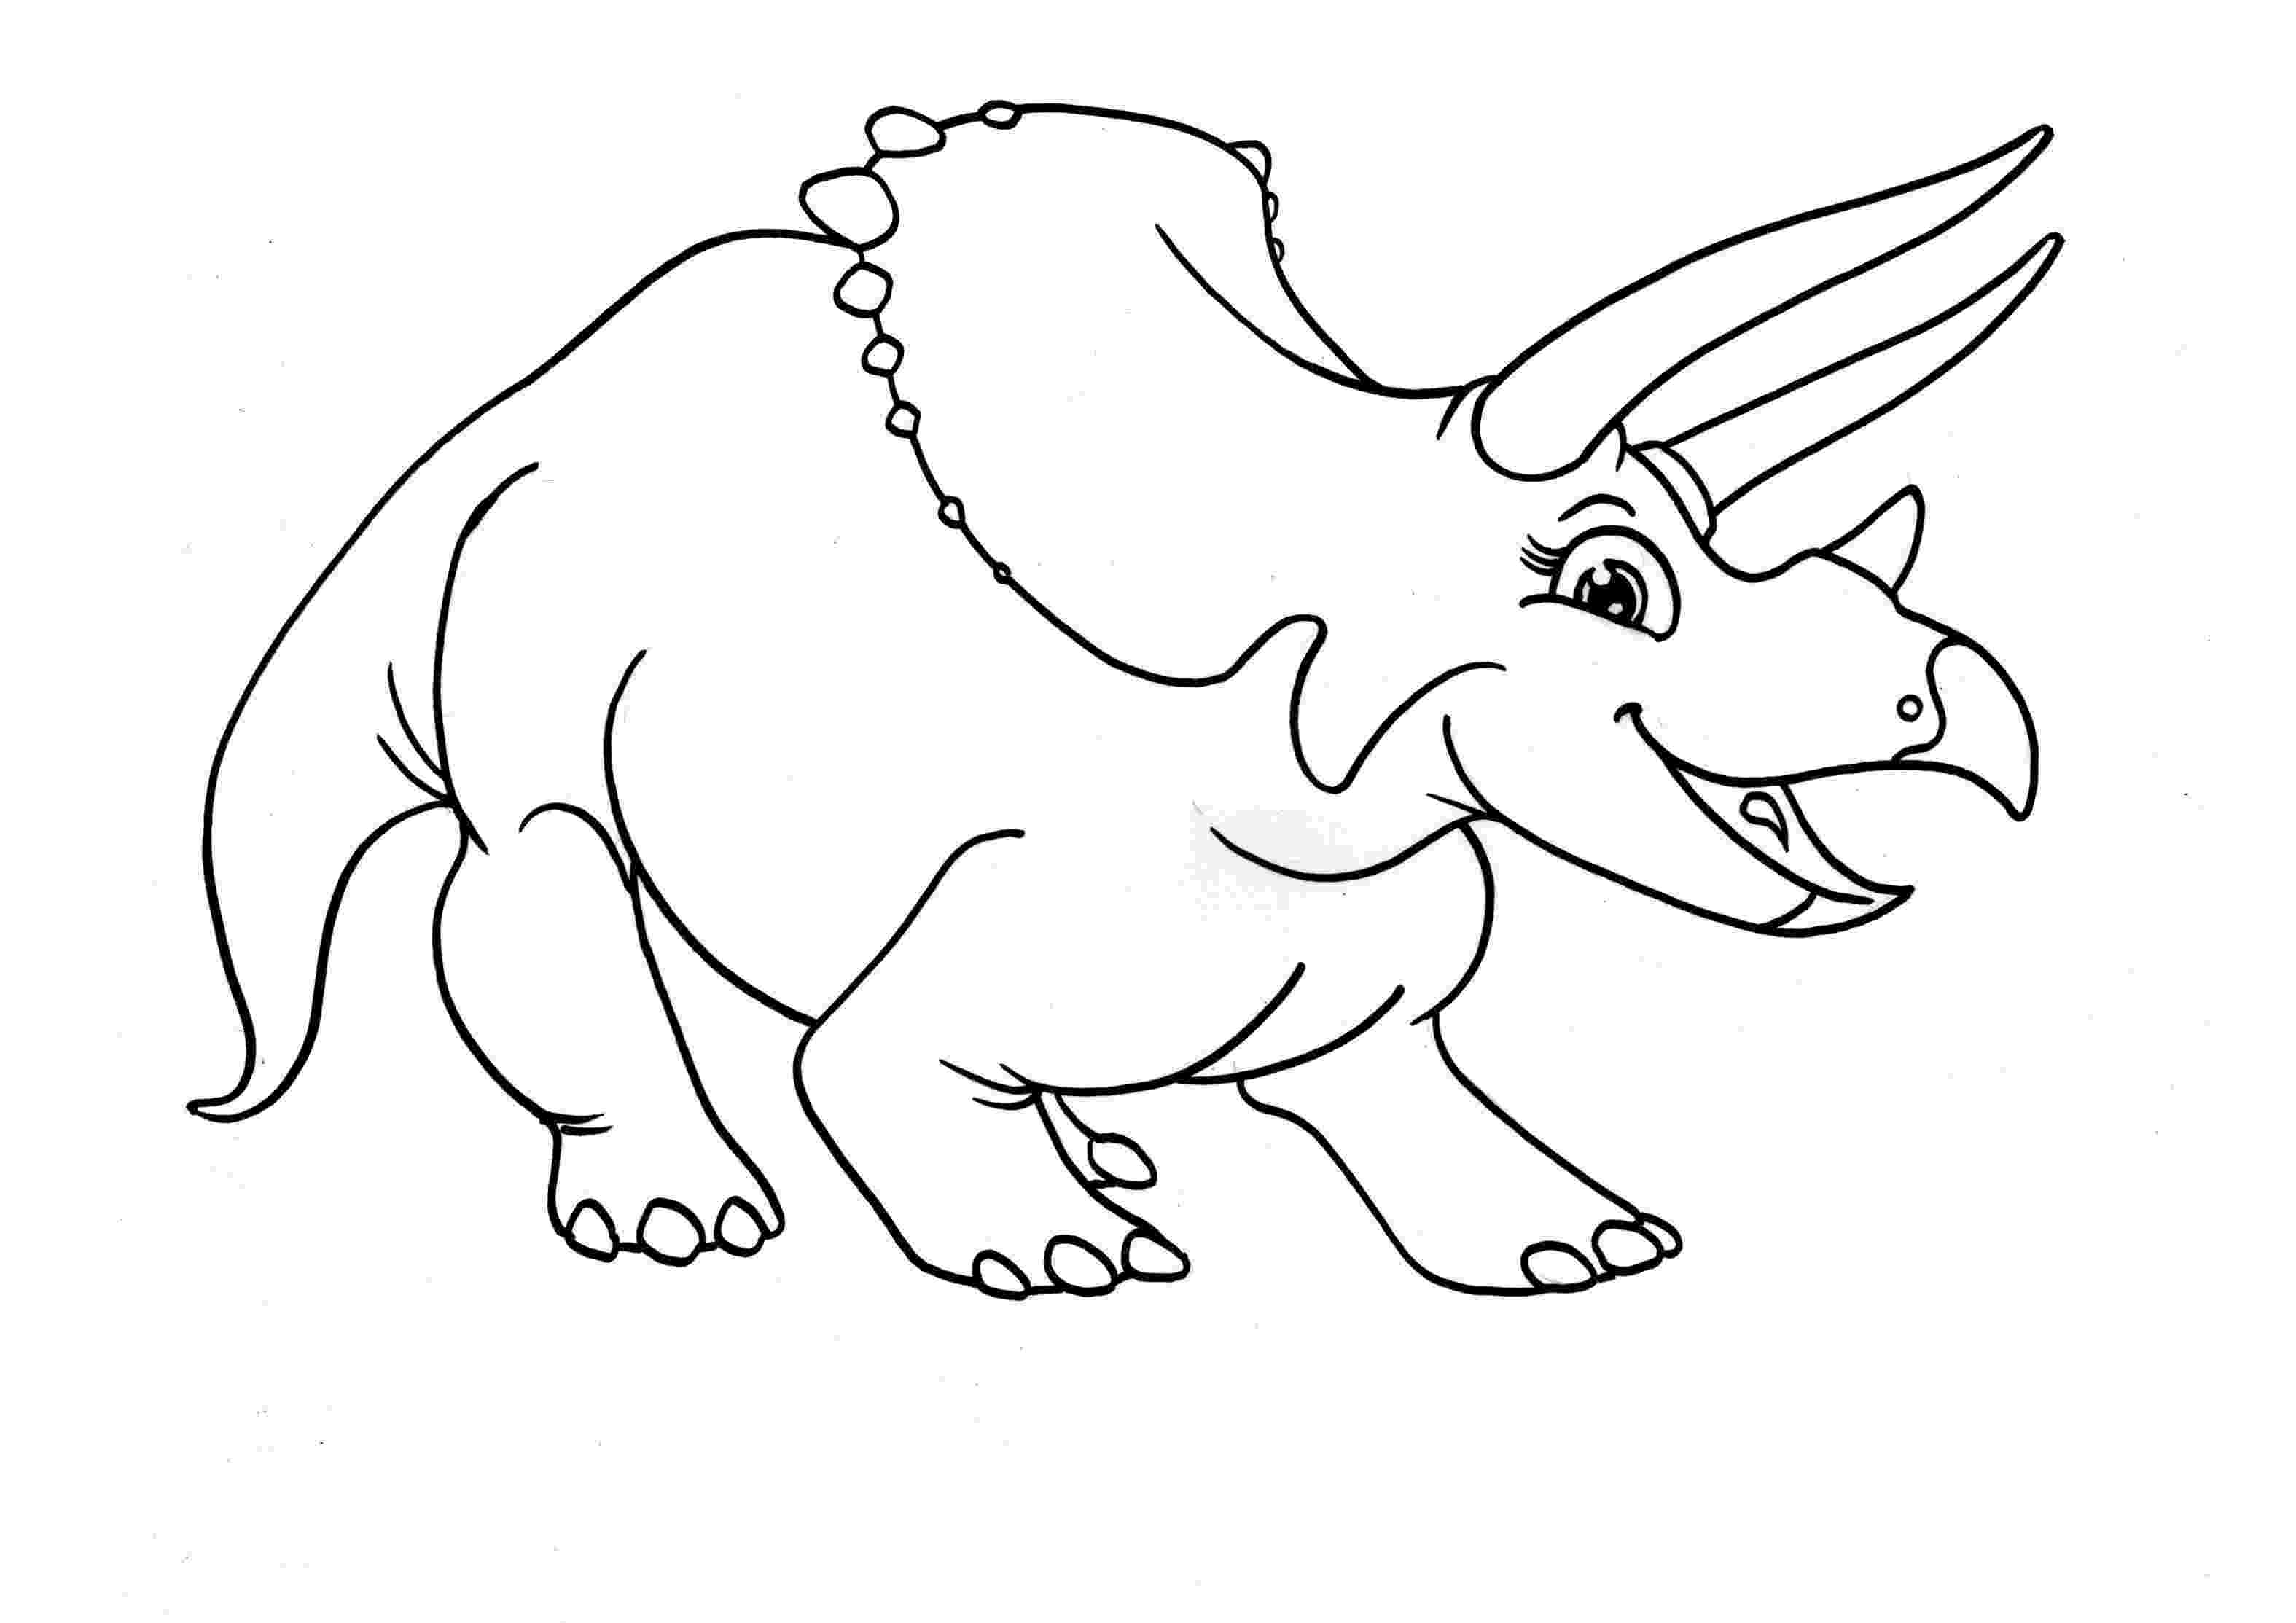 pictures of dinosaurs to print printable dinosaur coloring pages for kids cool2bkids to of dinosaurs pictures print